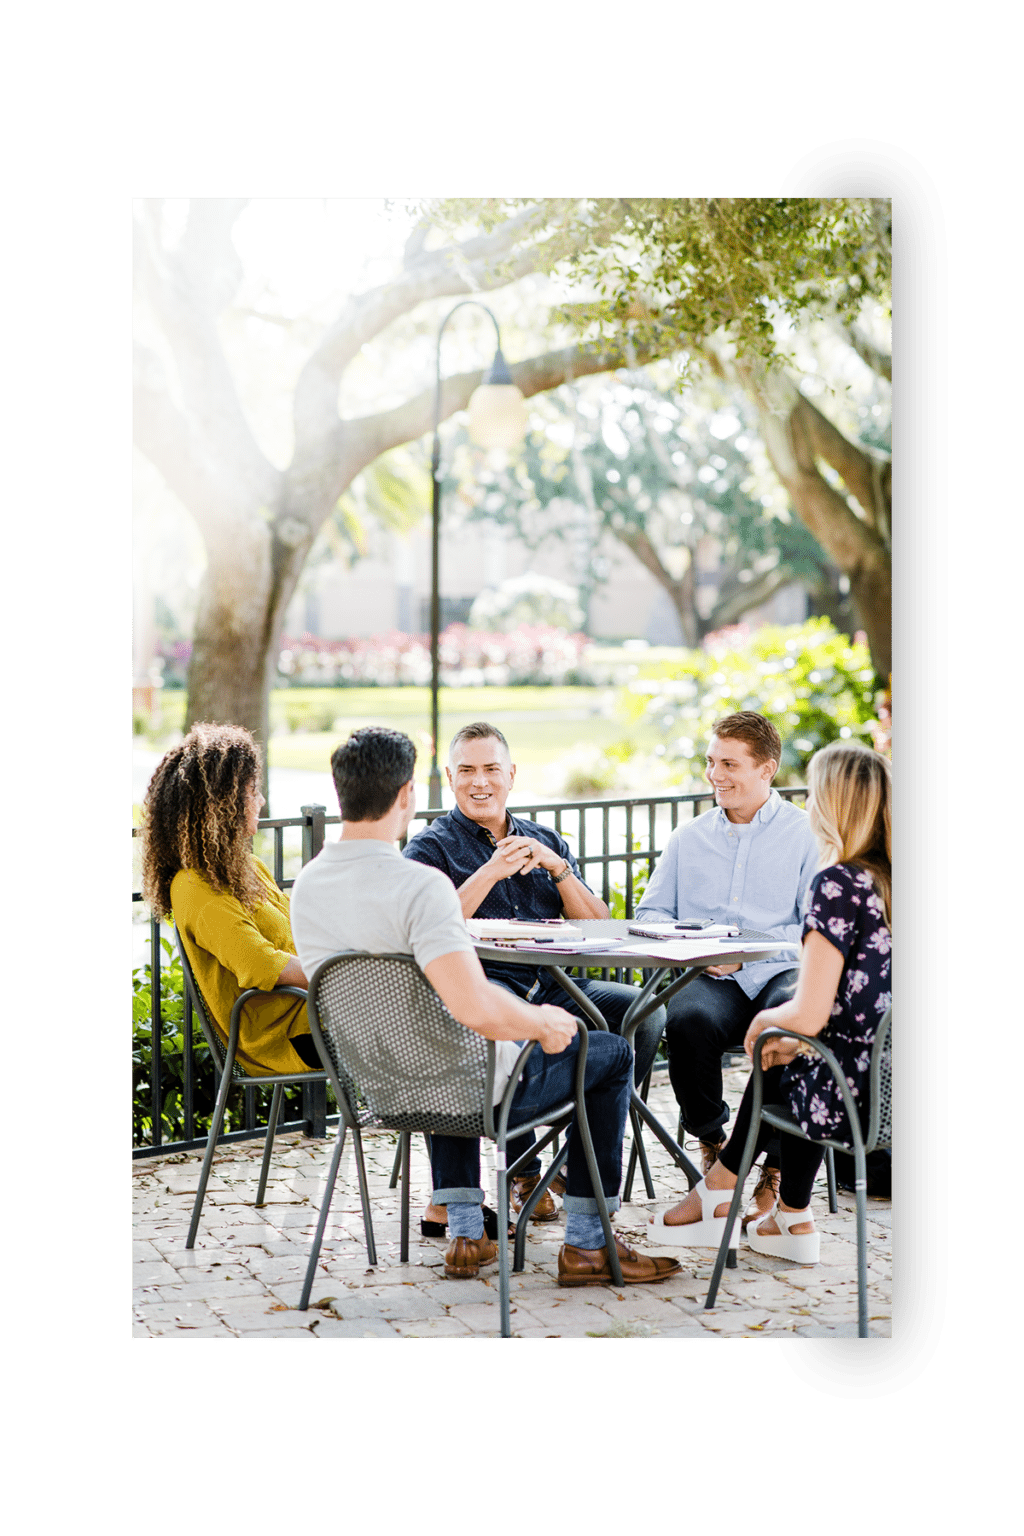 Kent Ingle sitting with SEU students outside under a tree